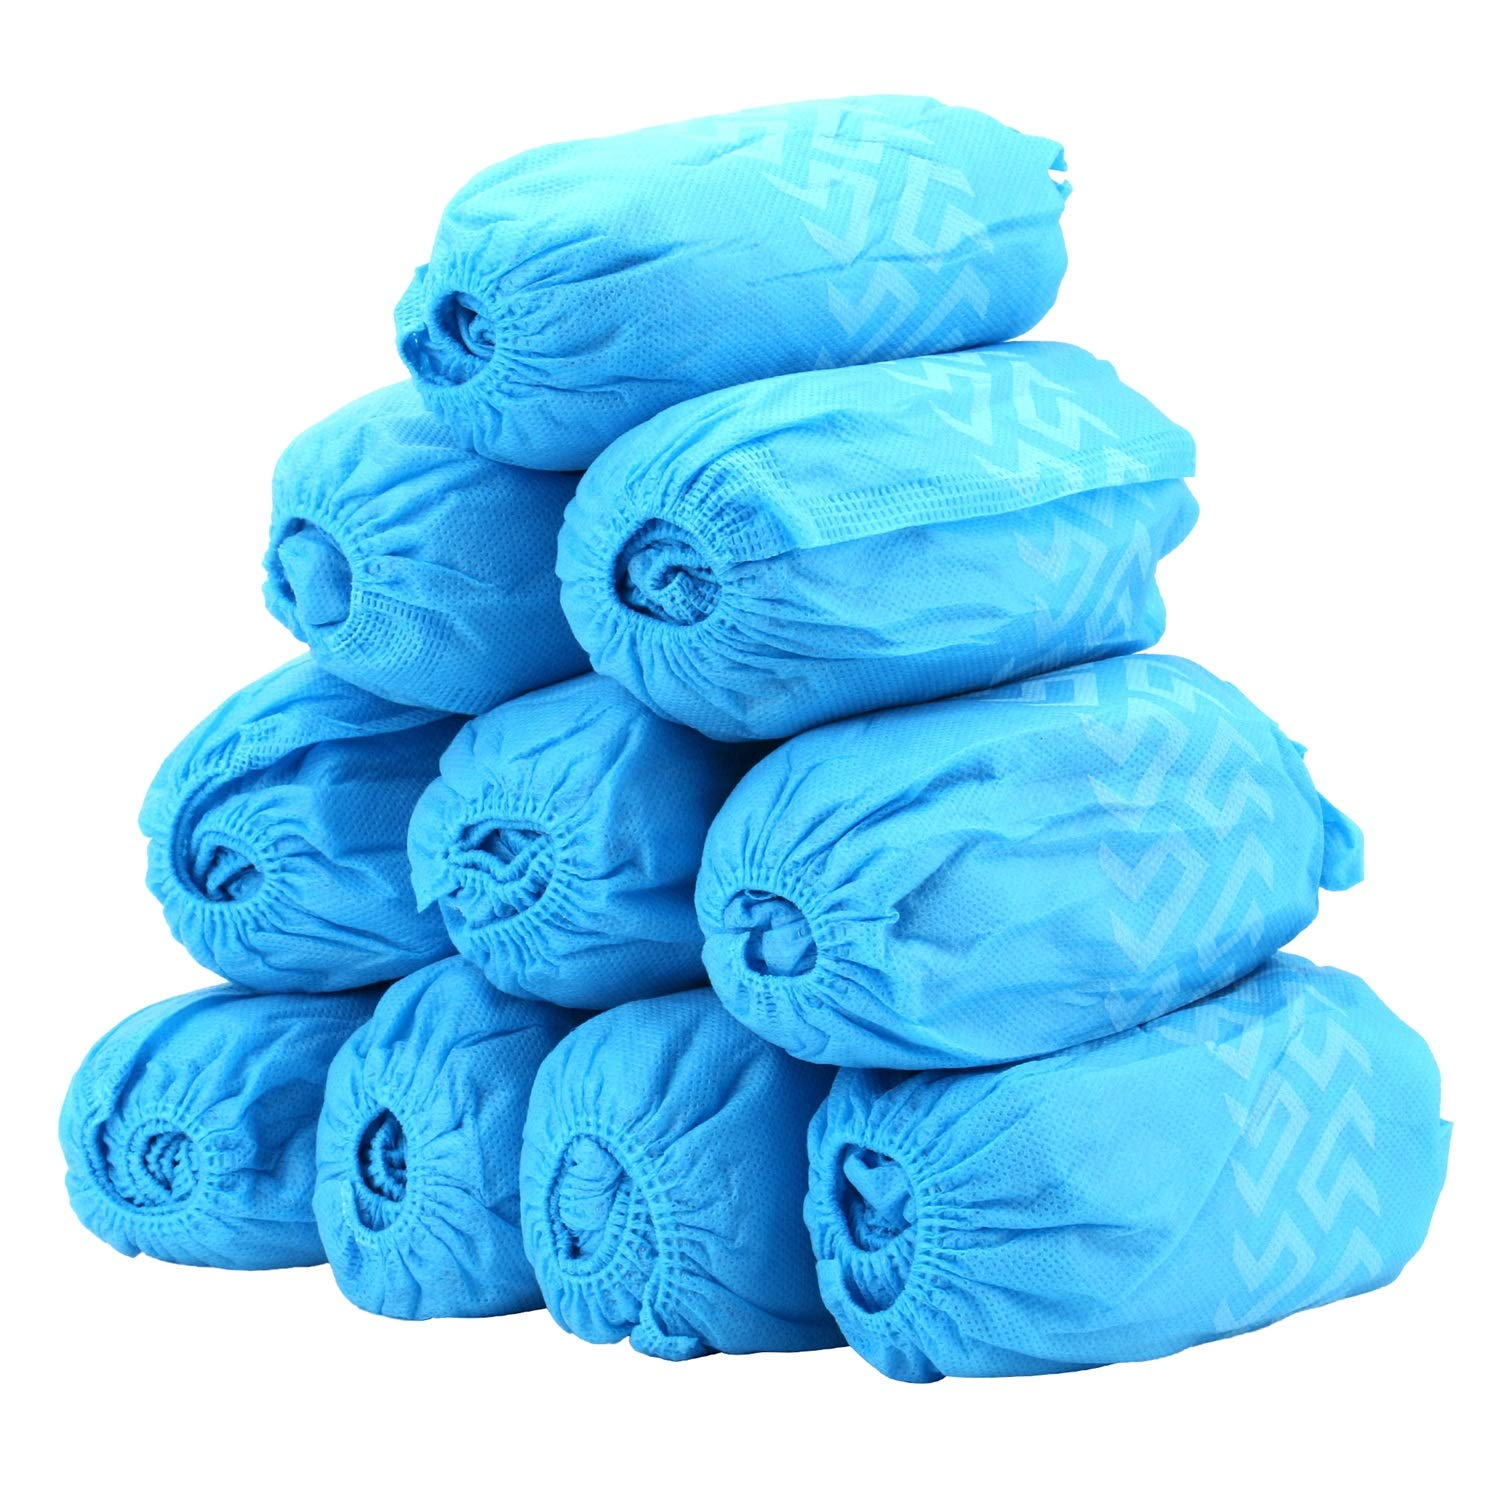 100 Pack Shoe Covers - Disposable Hygienic Boot Cover for Medical, Construction, Workplace, Indoor Carpet Floor Protection - Non-Slip by THETIS Homes